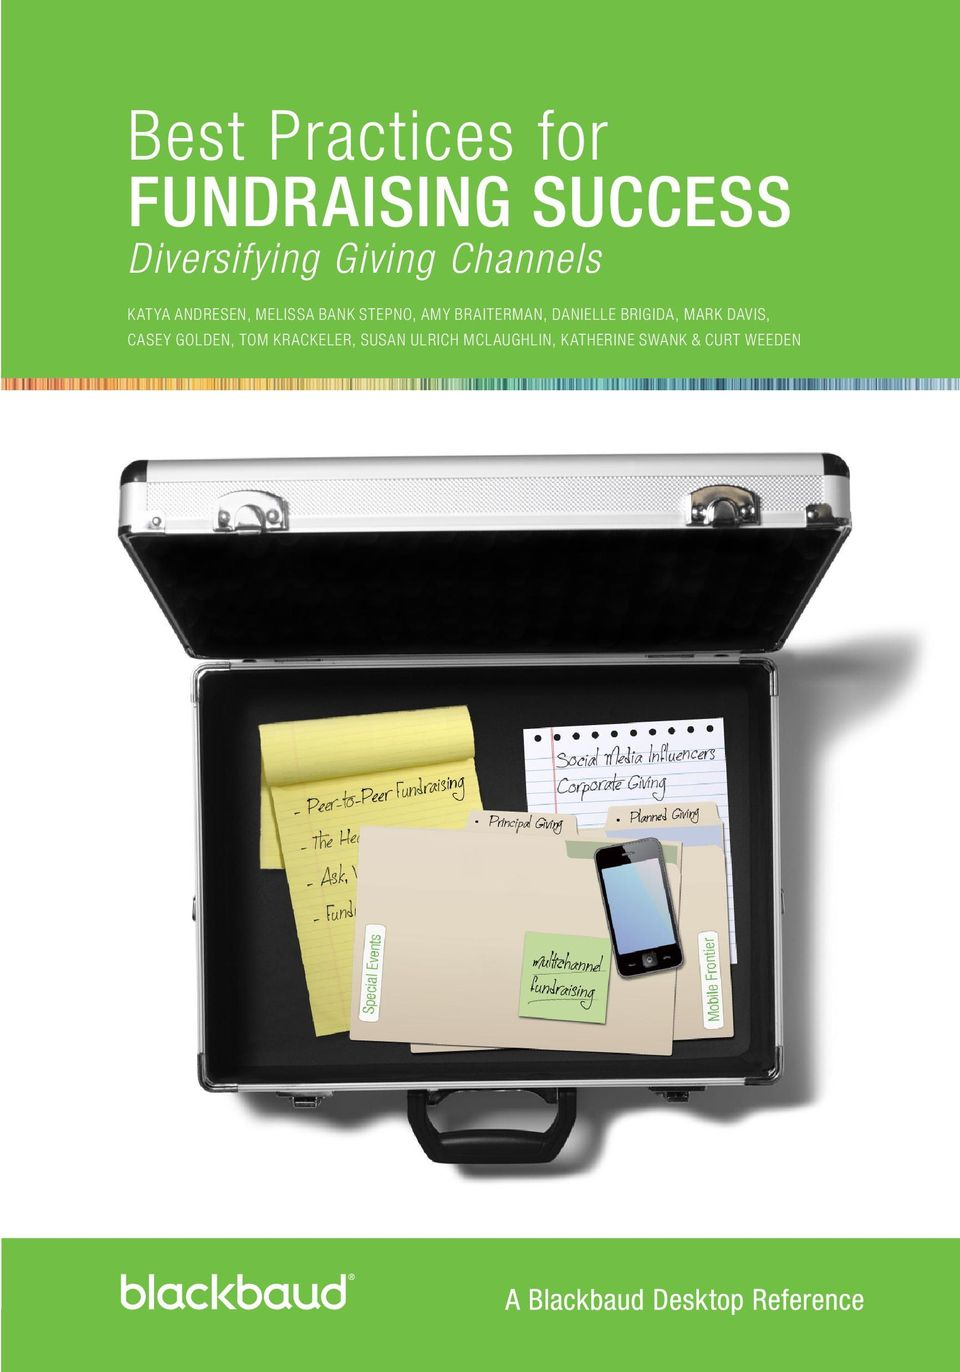 BRAITERMAN, DANIELLE BRIGIDA, MARK DAVIS, CASEY GOLDEN,